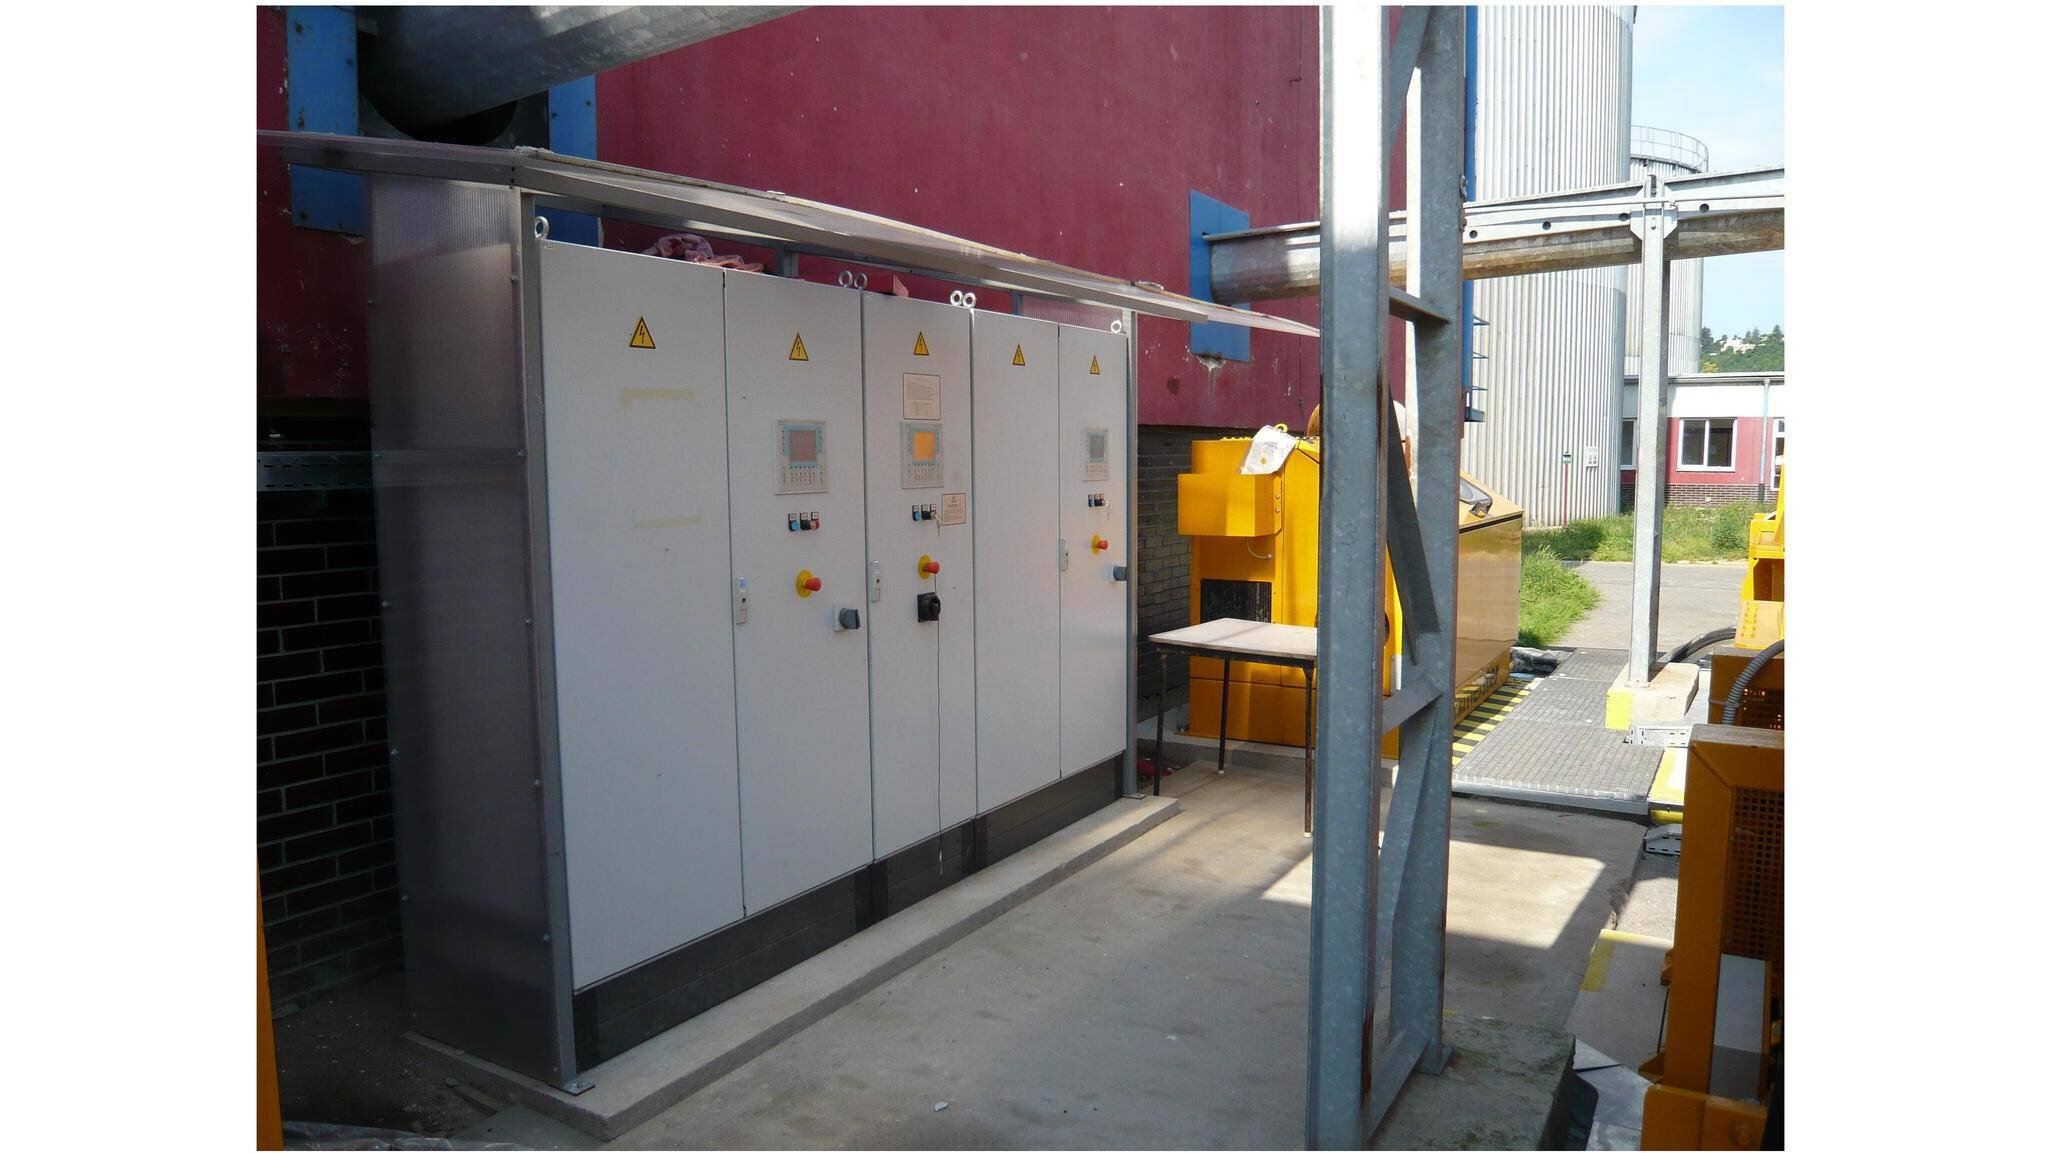 Gallery image 2 - The Putzmeister control cabinets (blackbox unit) include the power and control part for the hydraulic systems.